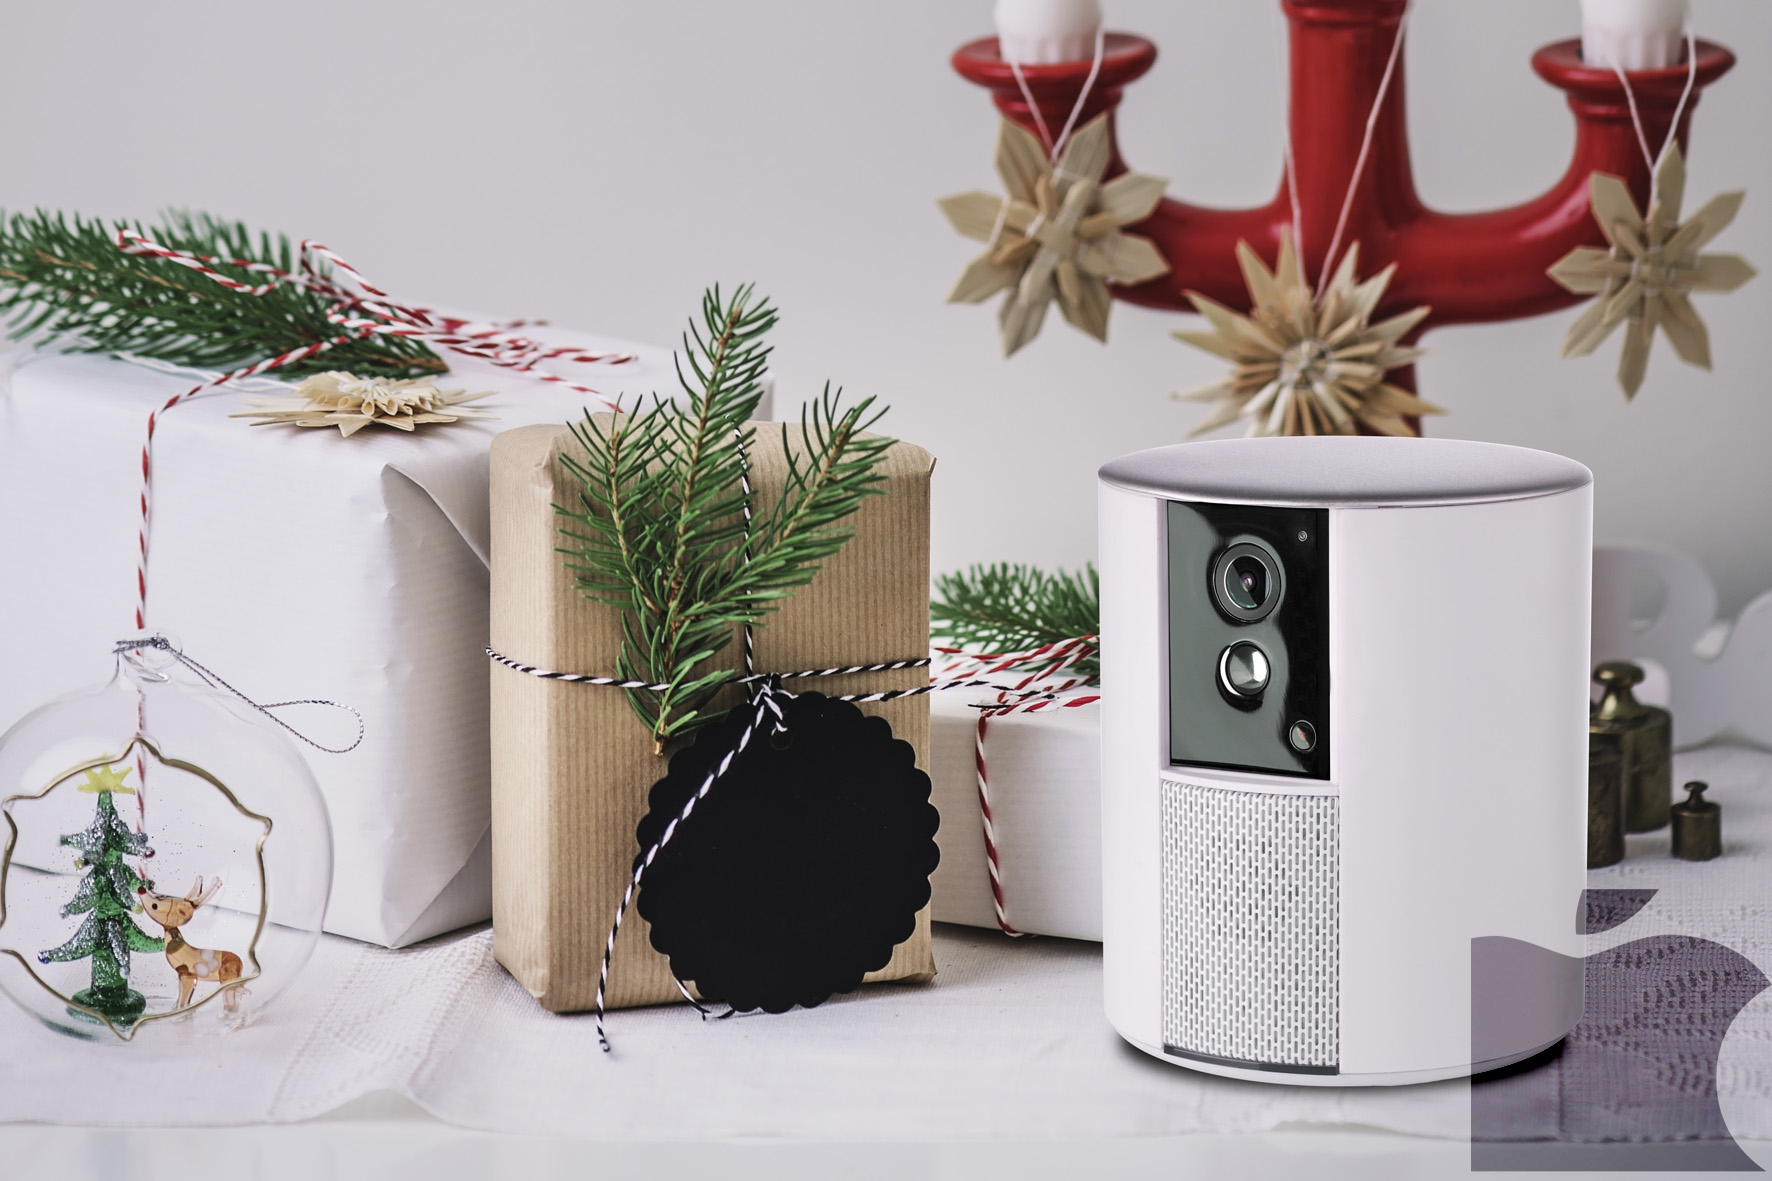 Celebra las fiestas navide as sin preocupaciones con somfy one - Somfy one plus ...